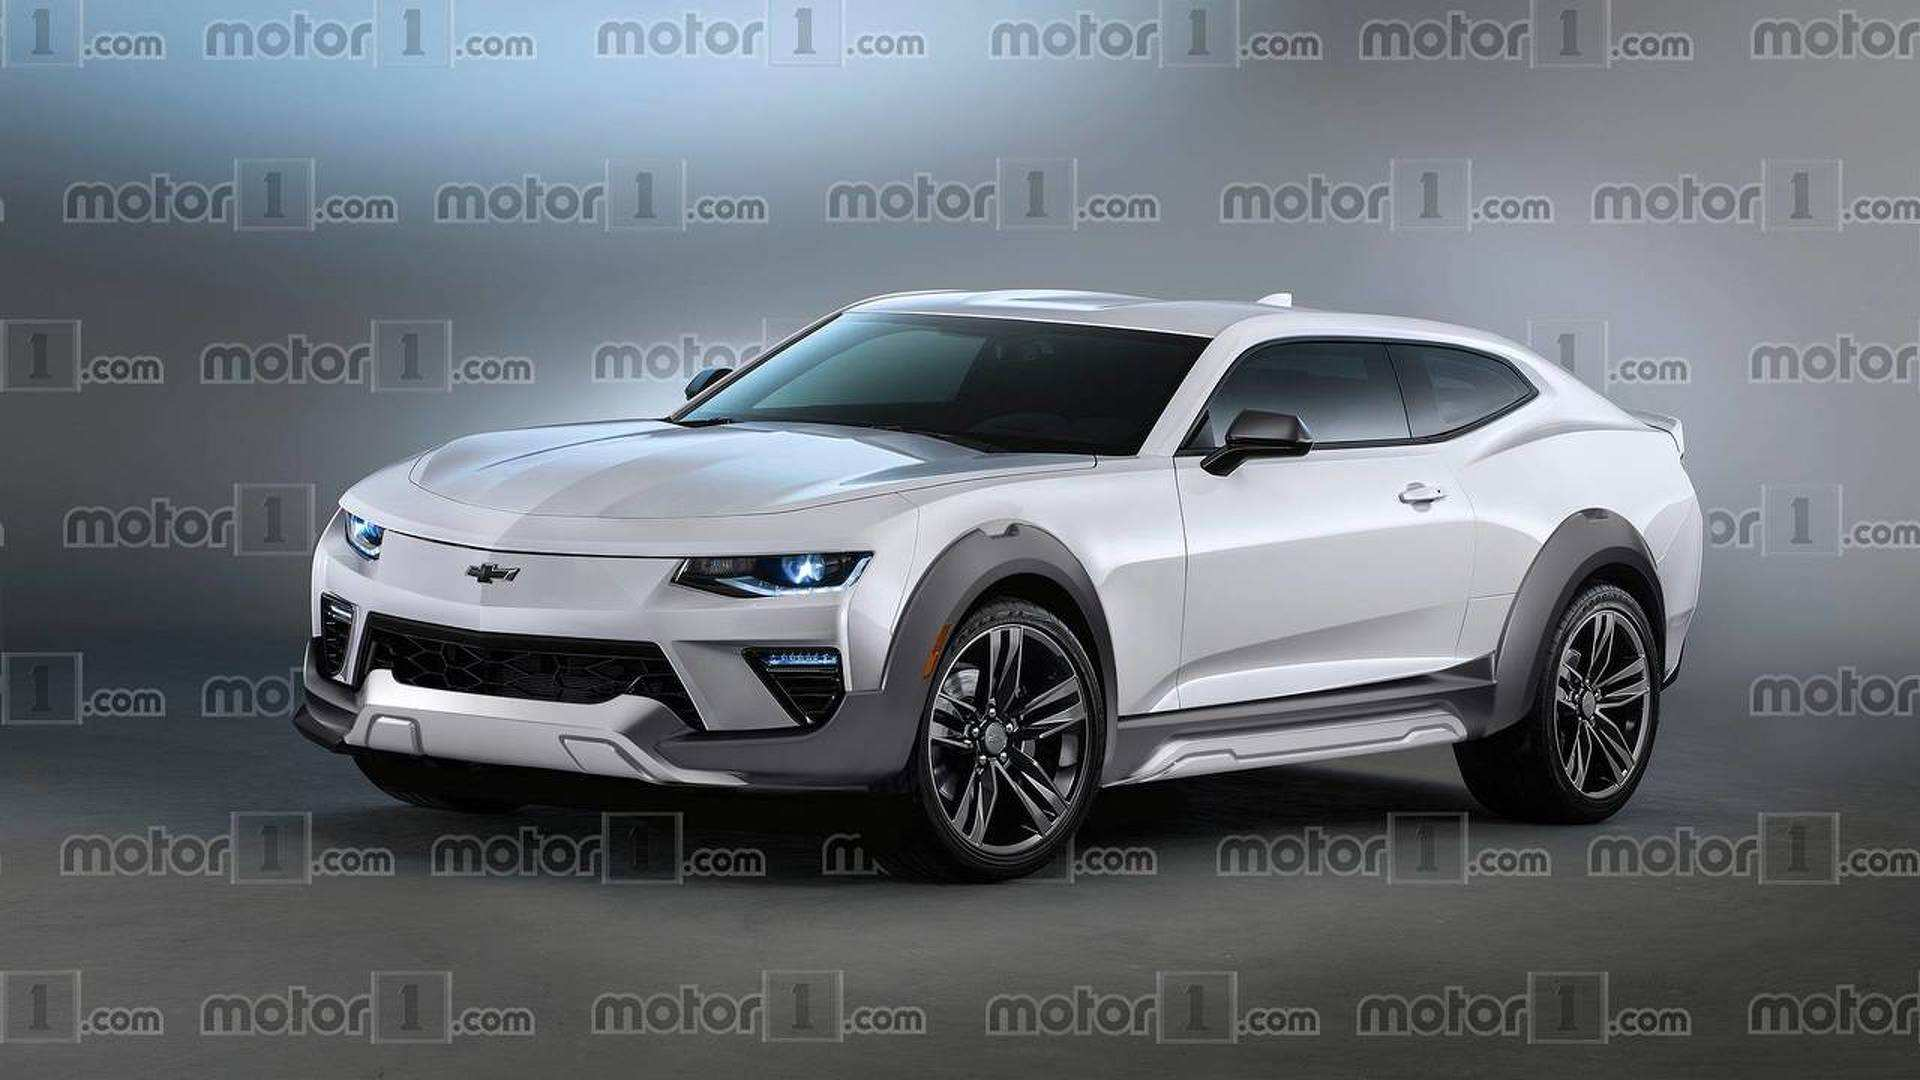 47 All New Ford Concept Cars 2020 Release Date with Ford Concept Cars 2020